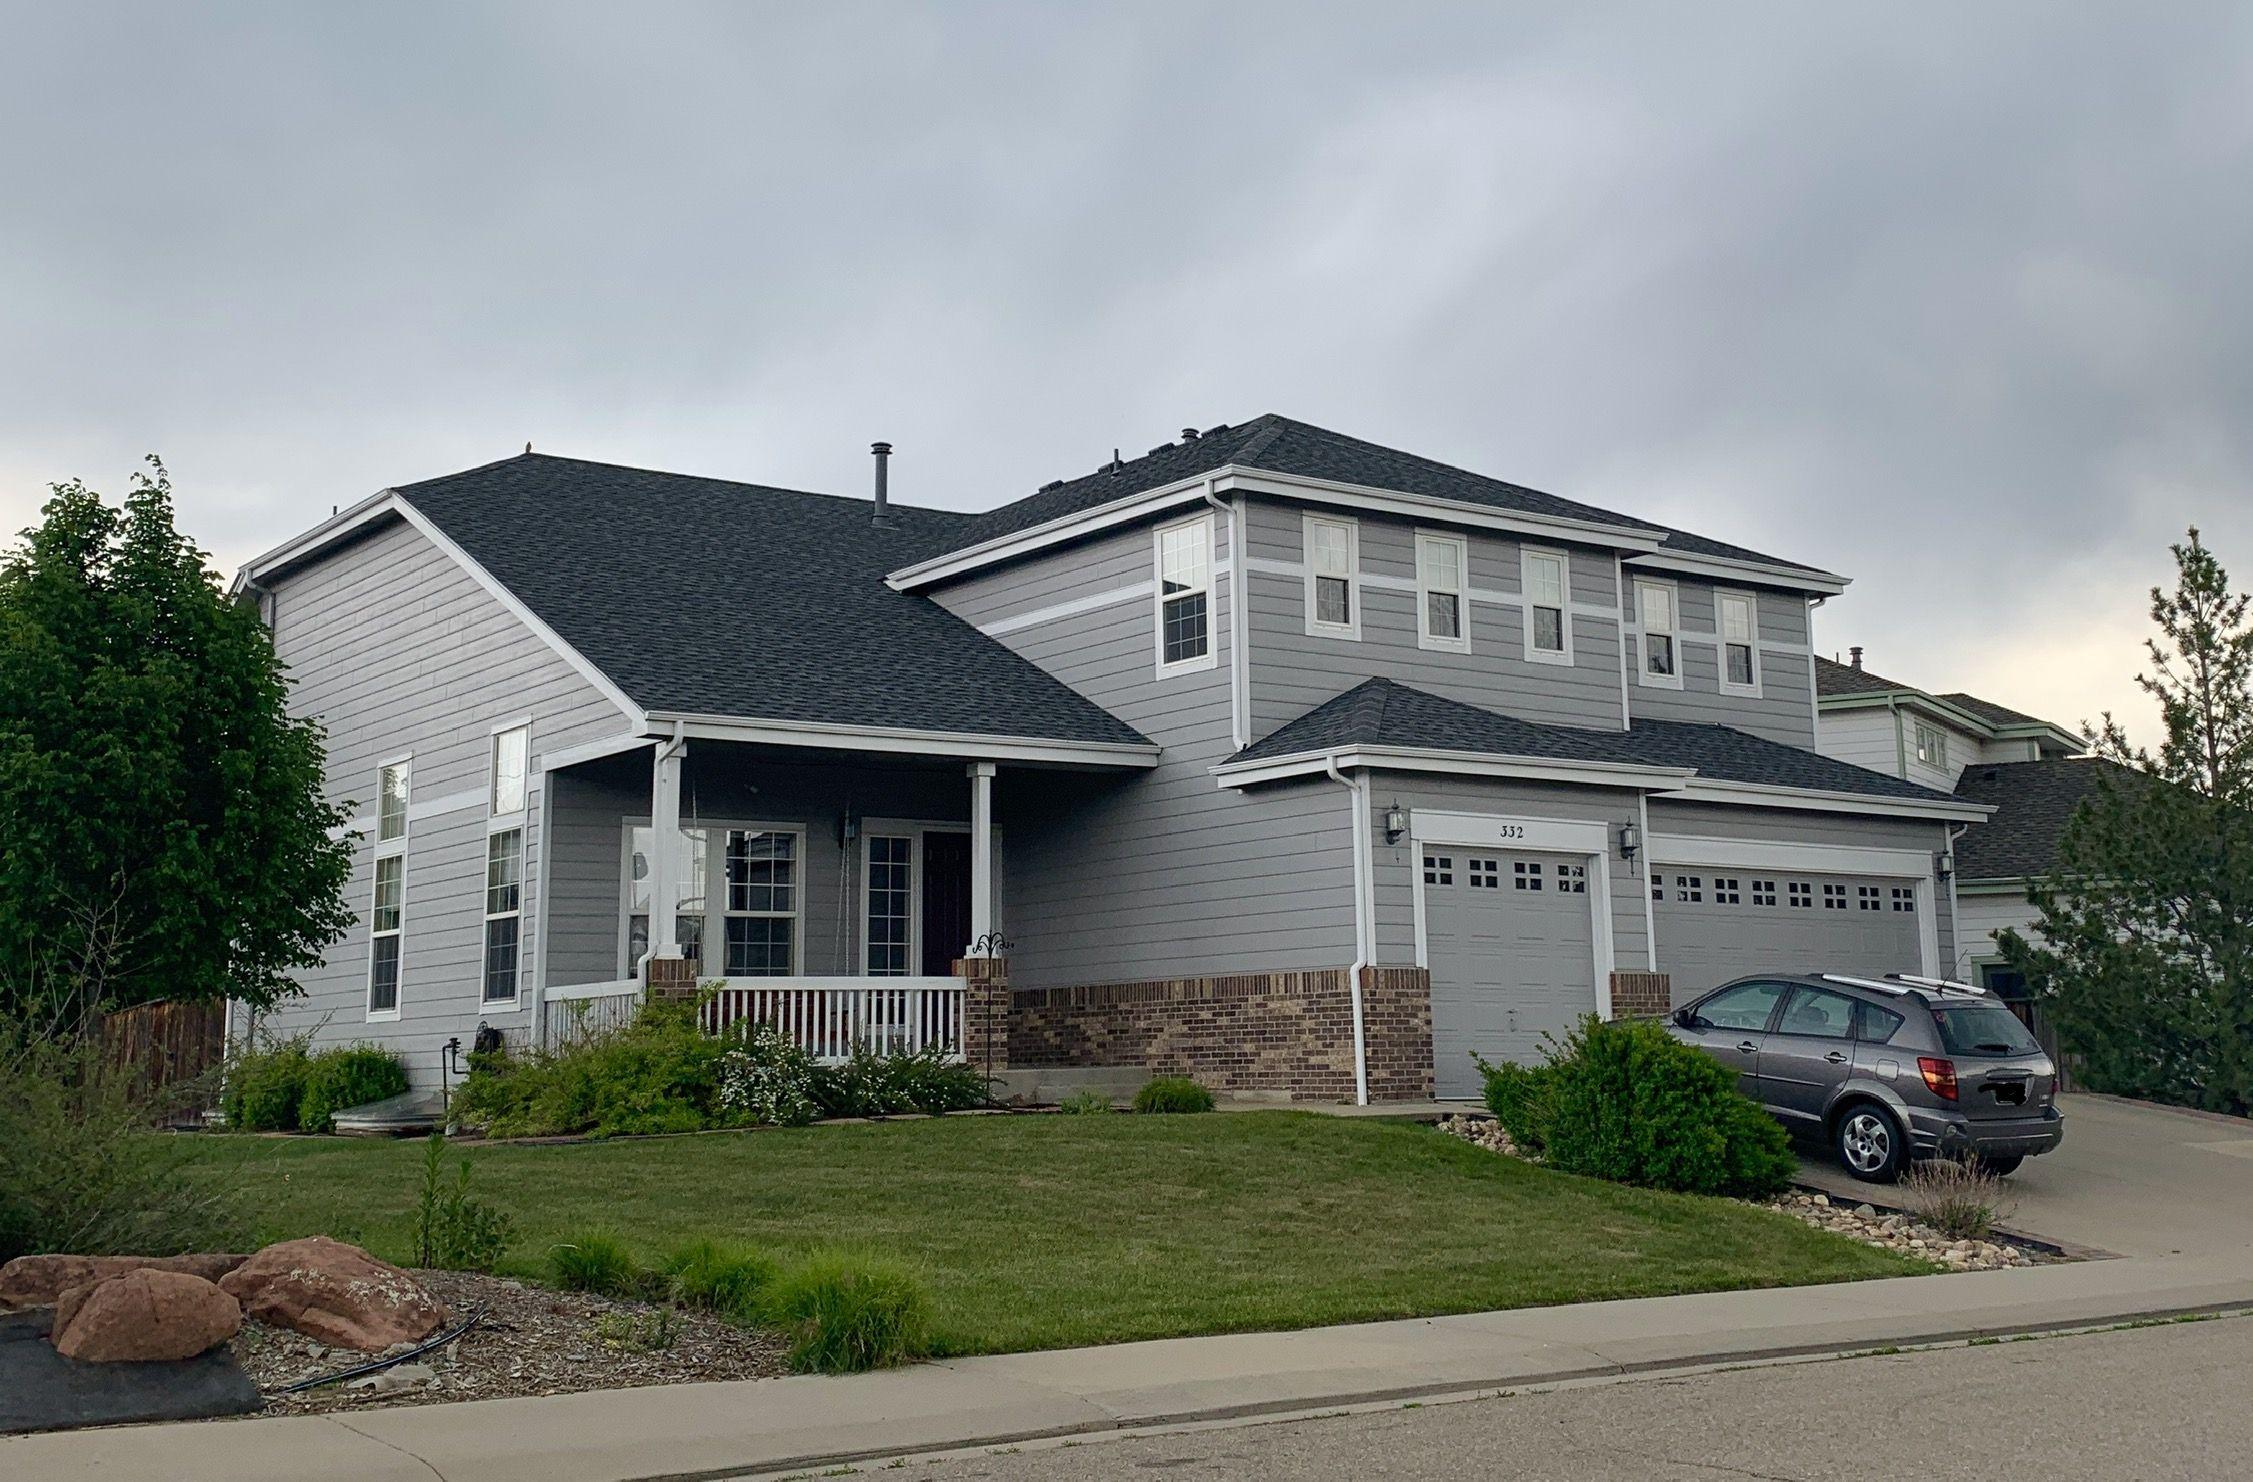 We Re Roofed This Home In South Longmont Using Gaf Timberline Hd Shingles In The Color Pewter Gray Timberline Shingles Stucco Homes House Exterior